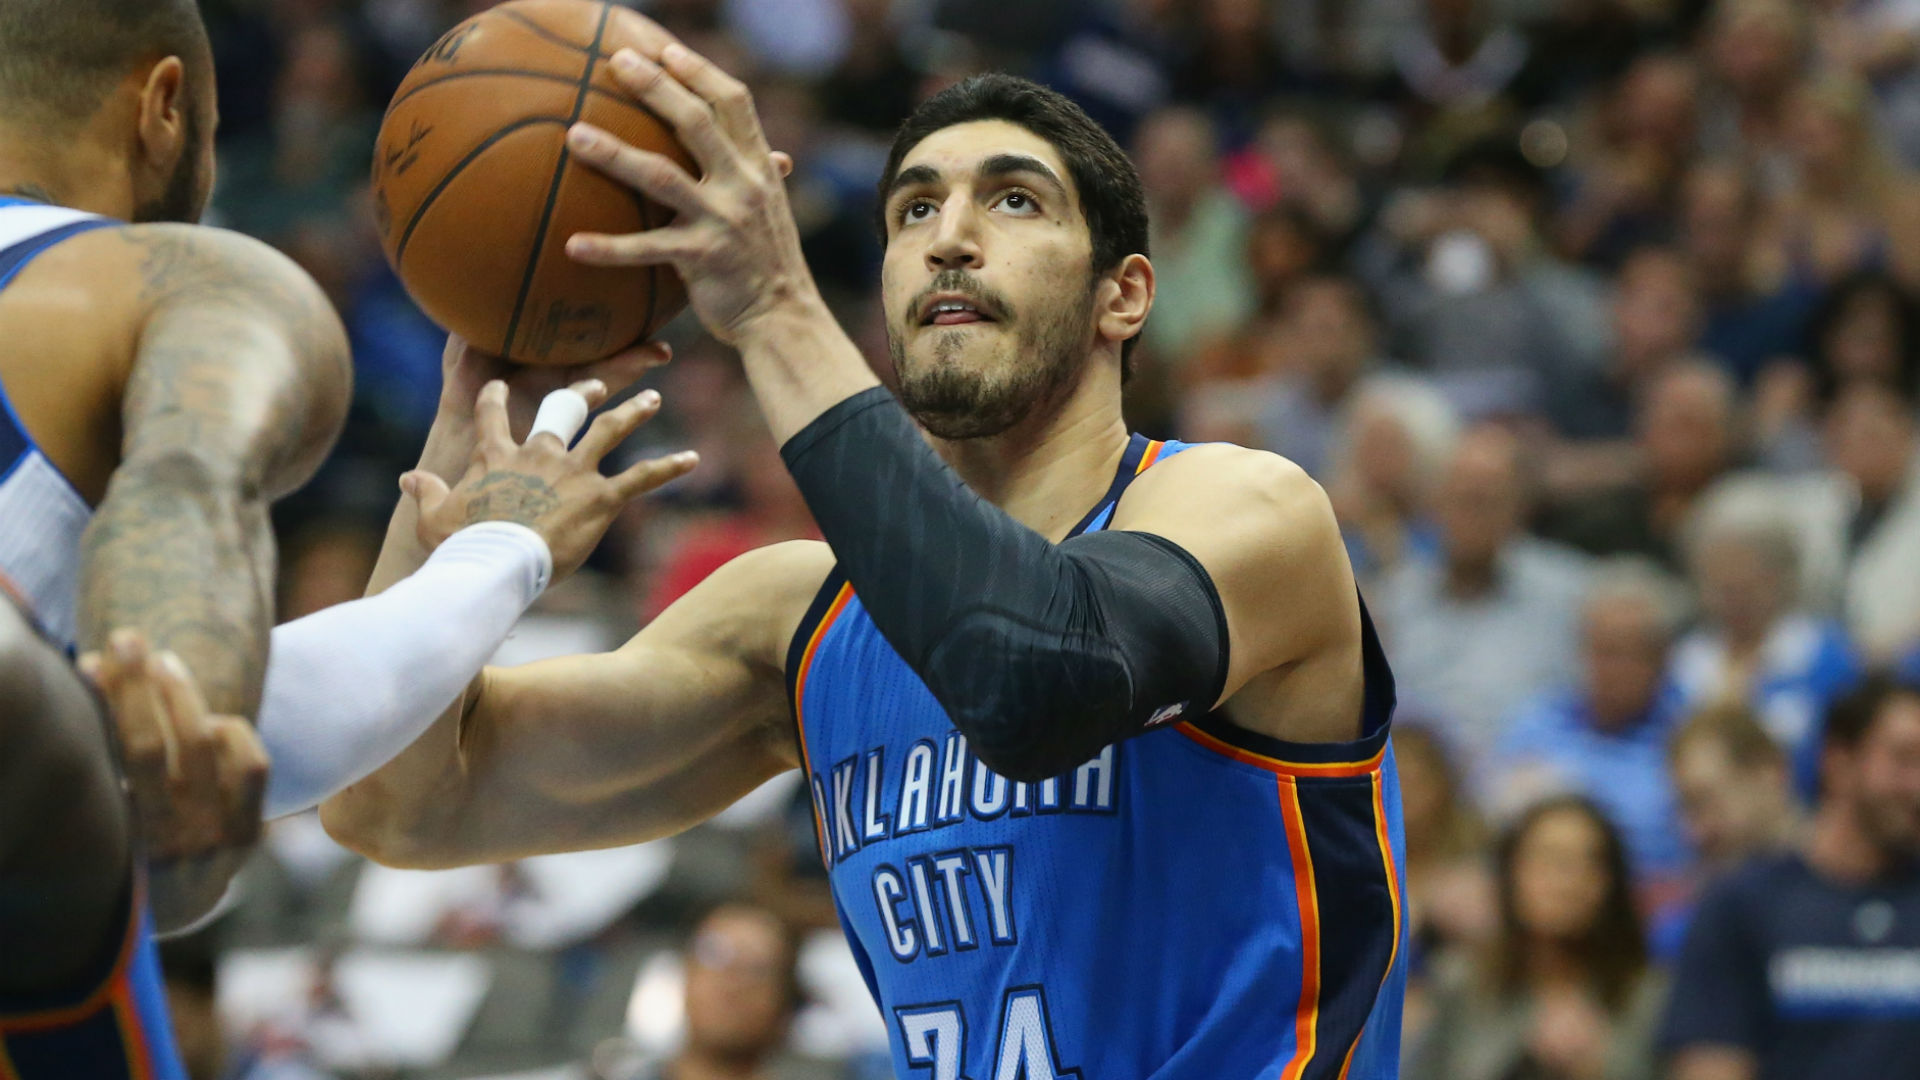 OKC's Enes Kanter tweets stranded in Romania after Turkish gov't cancels passport